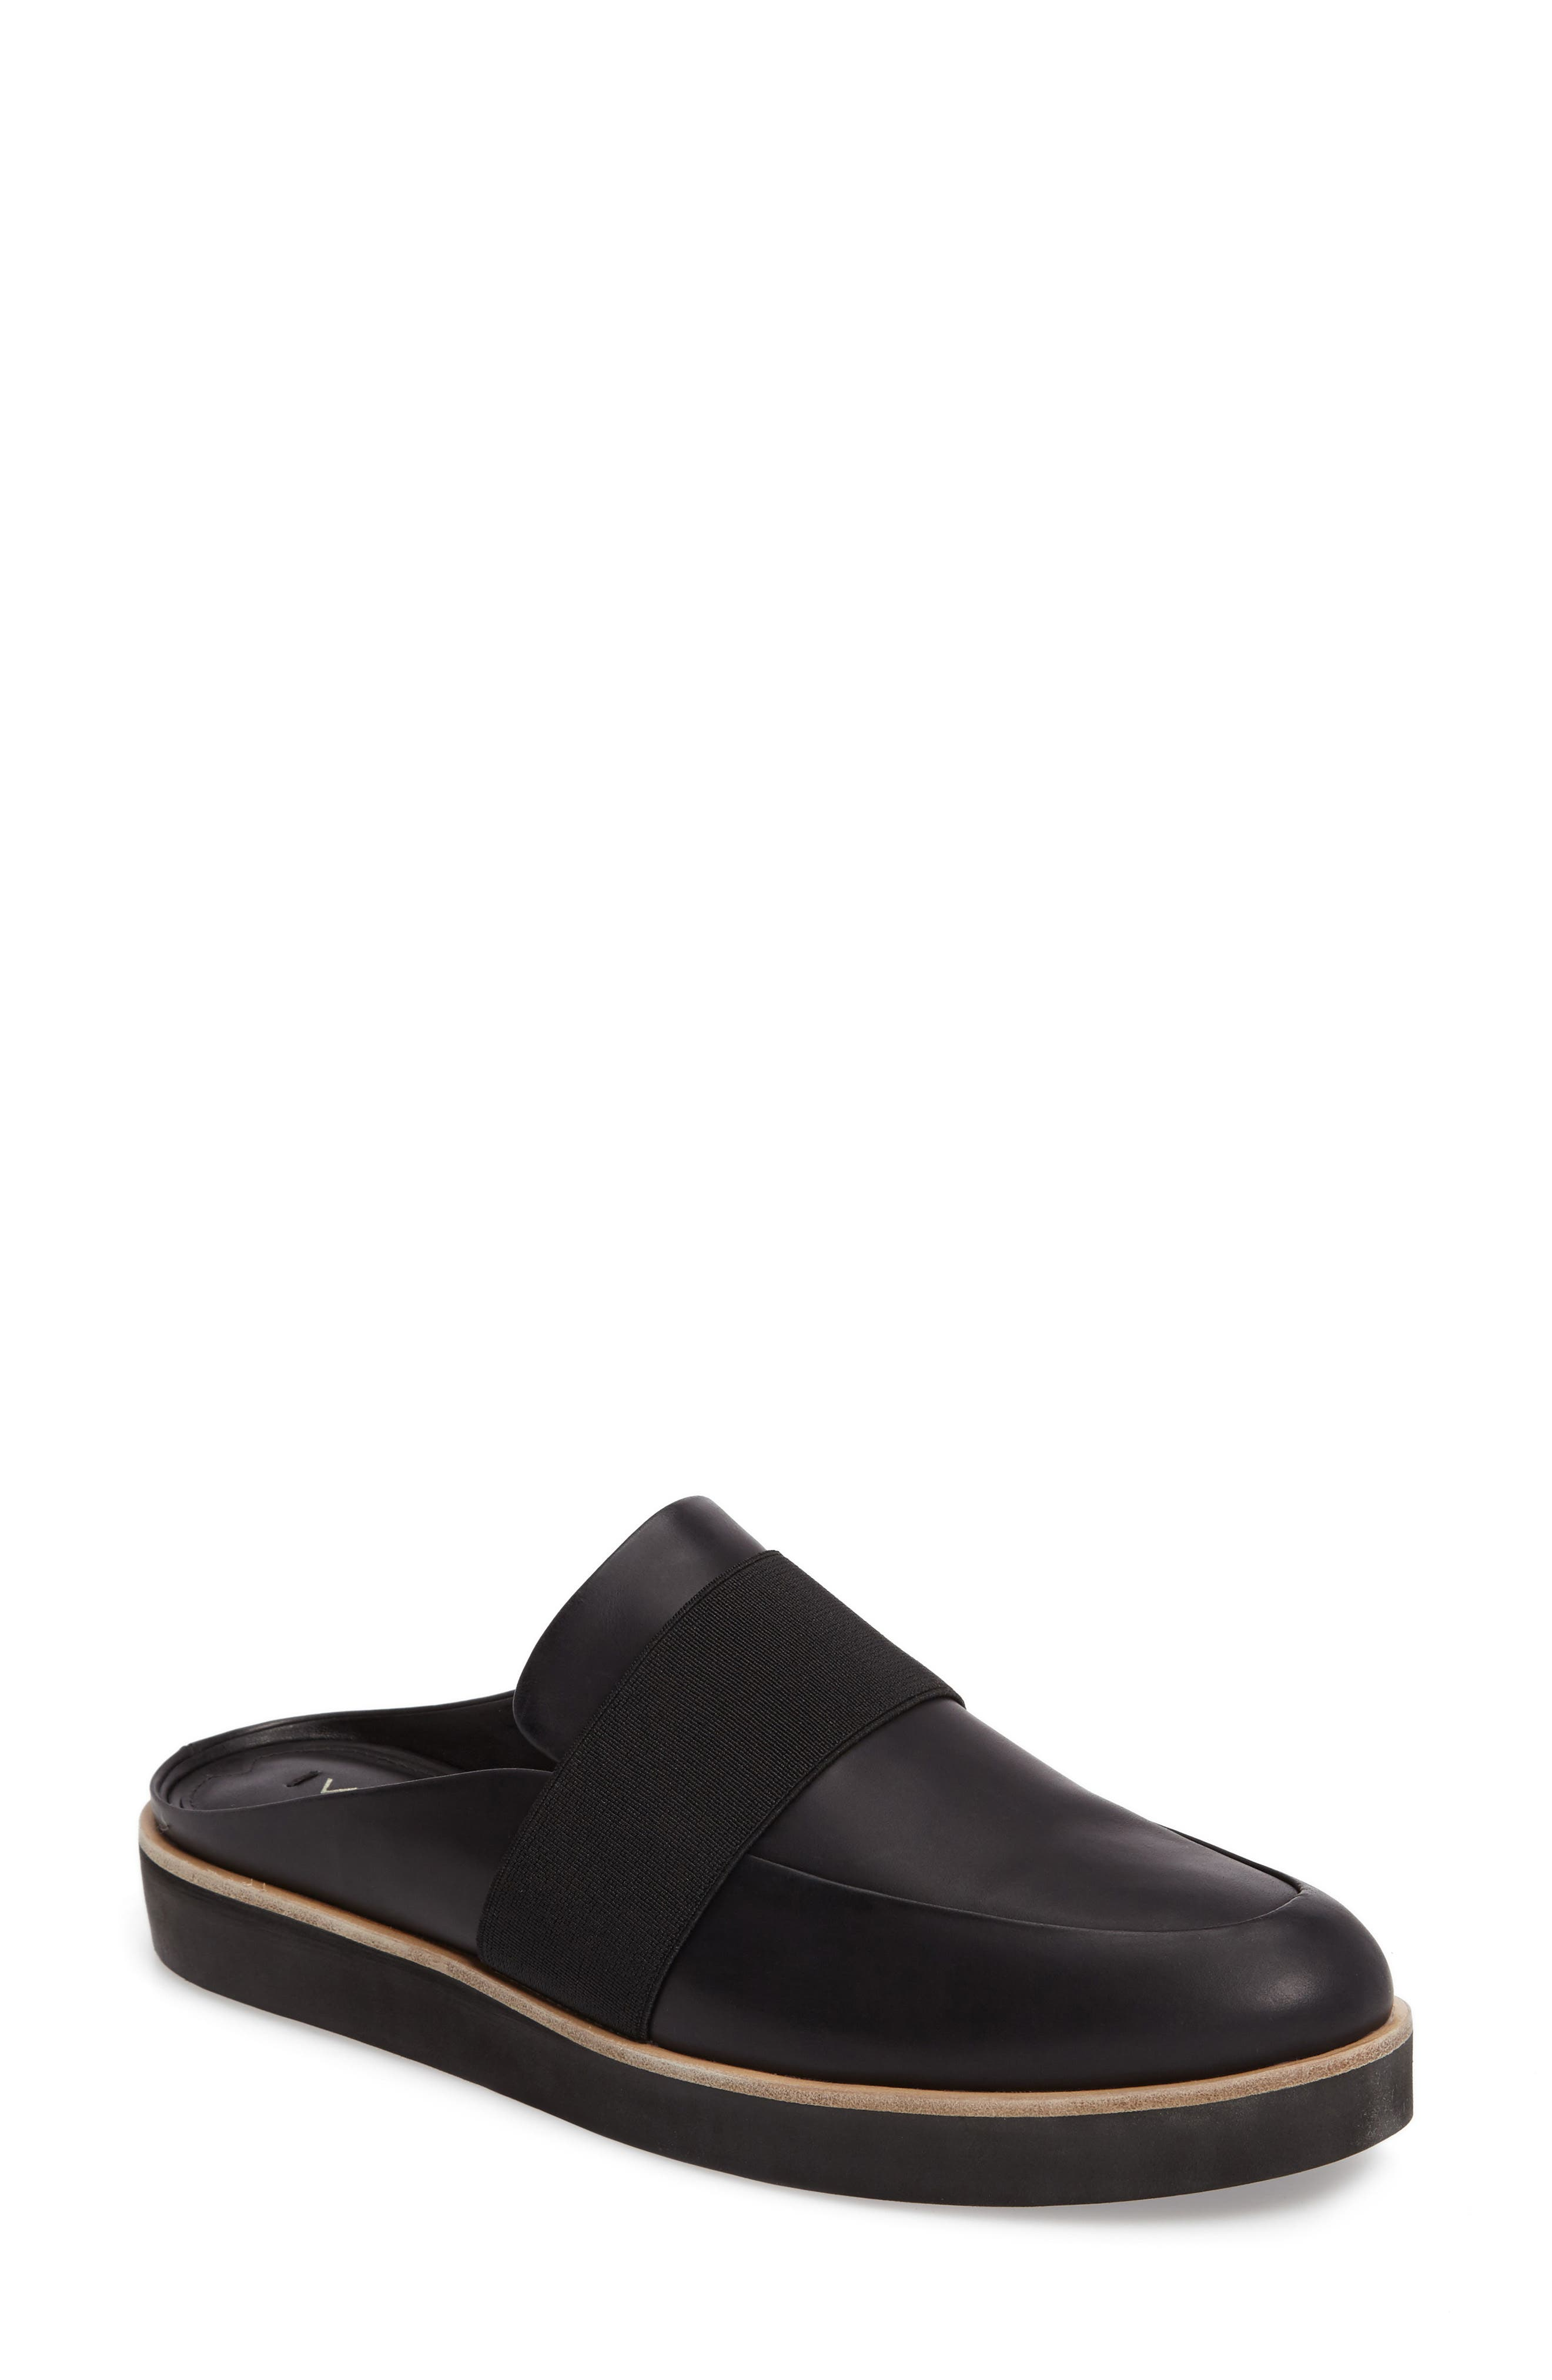 Via Spiga Tage Loafer Mule (Women)